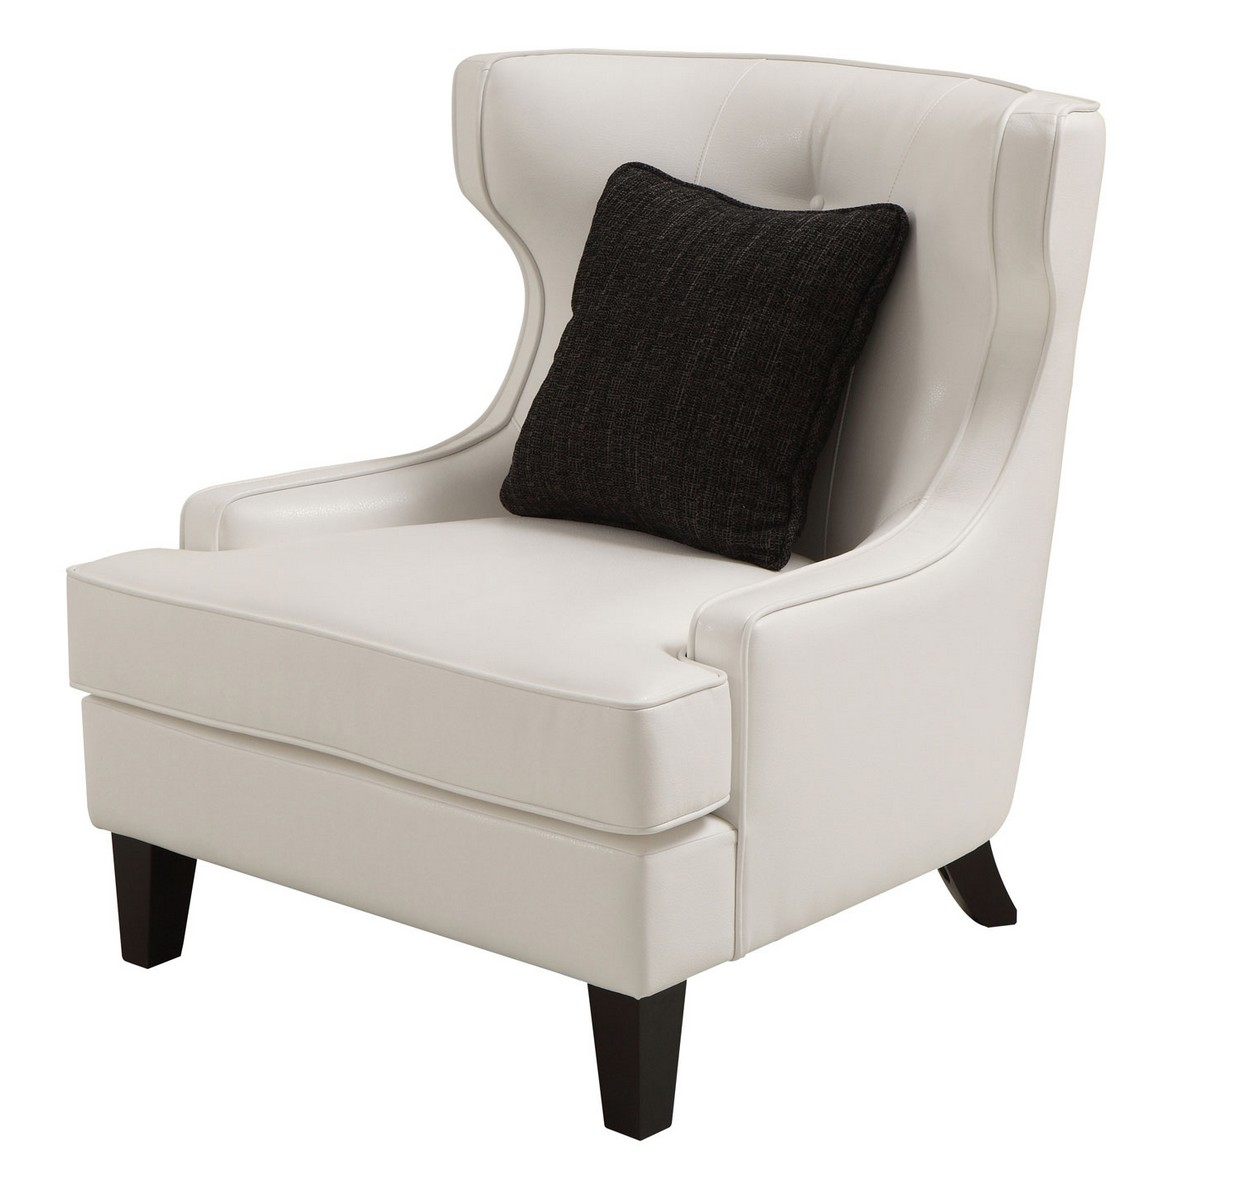 Armen Living Skyline Chair - White